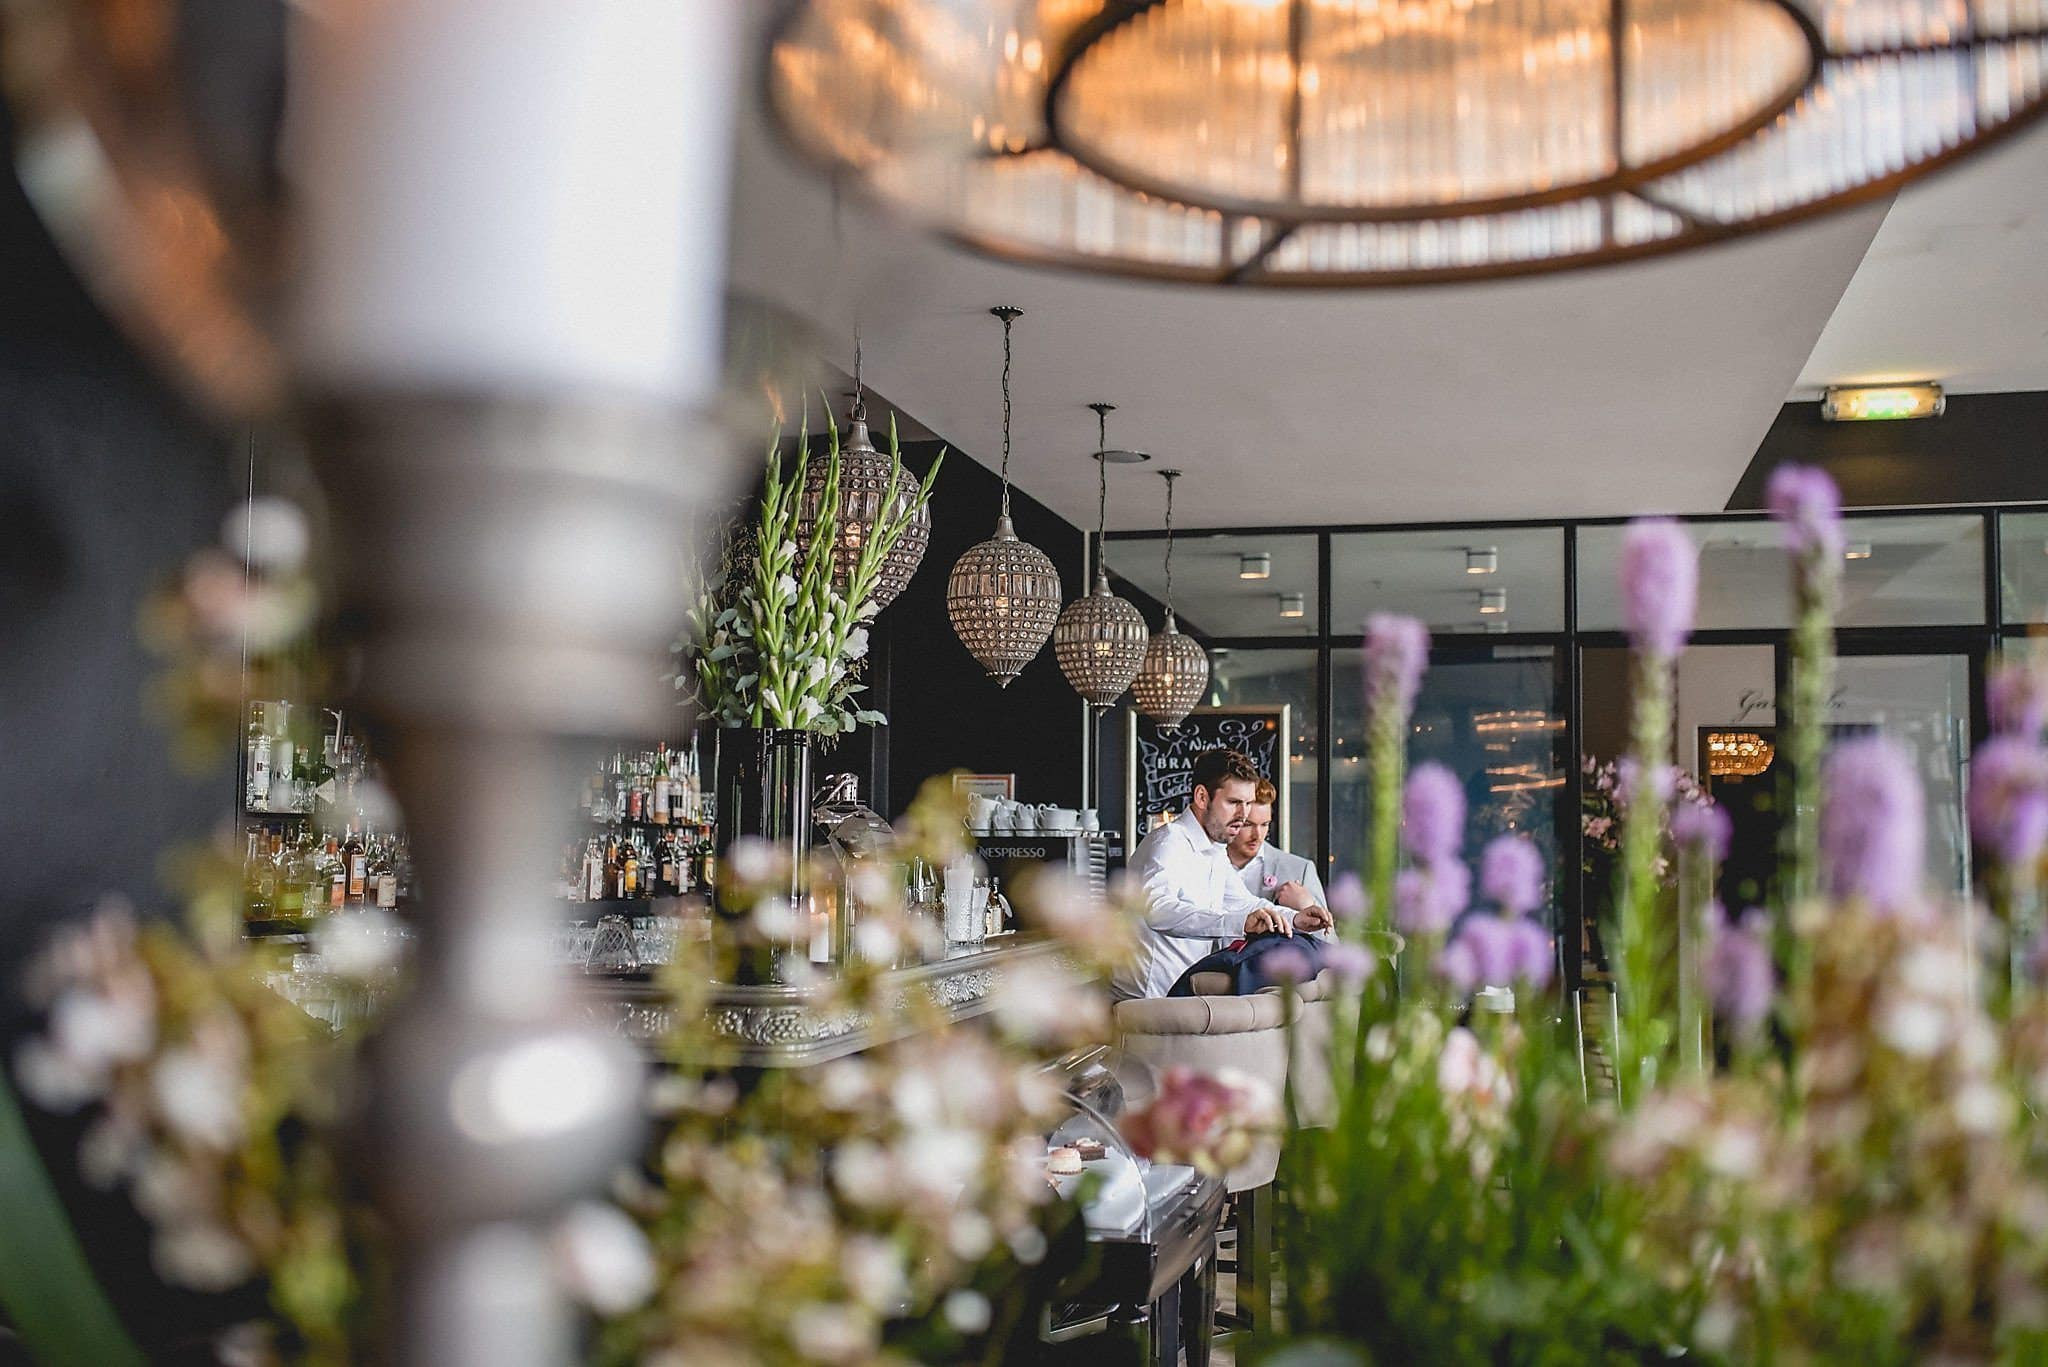 A view of the couple across Nimb restaurant in Copenhagen, taking in some of the pewter candlesticks and floral arrangements